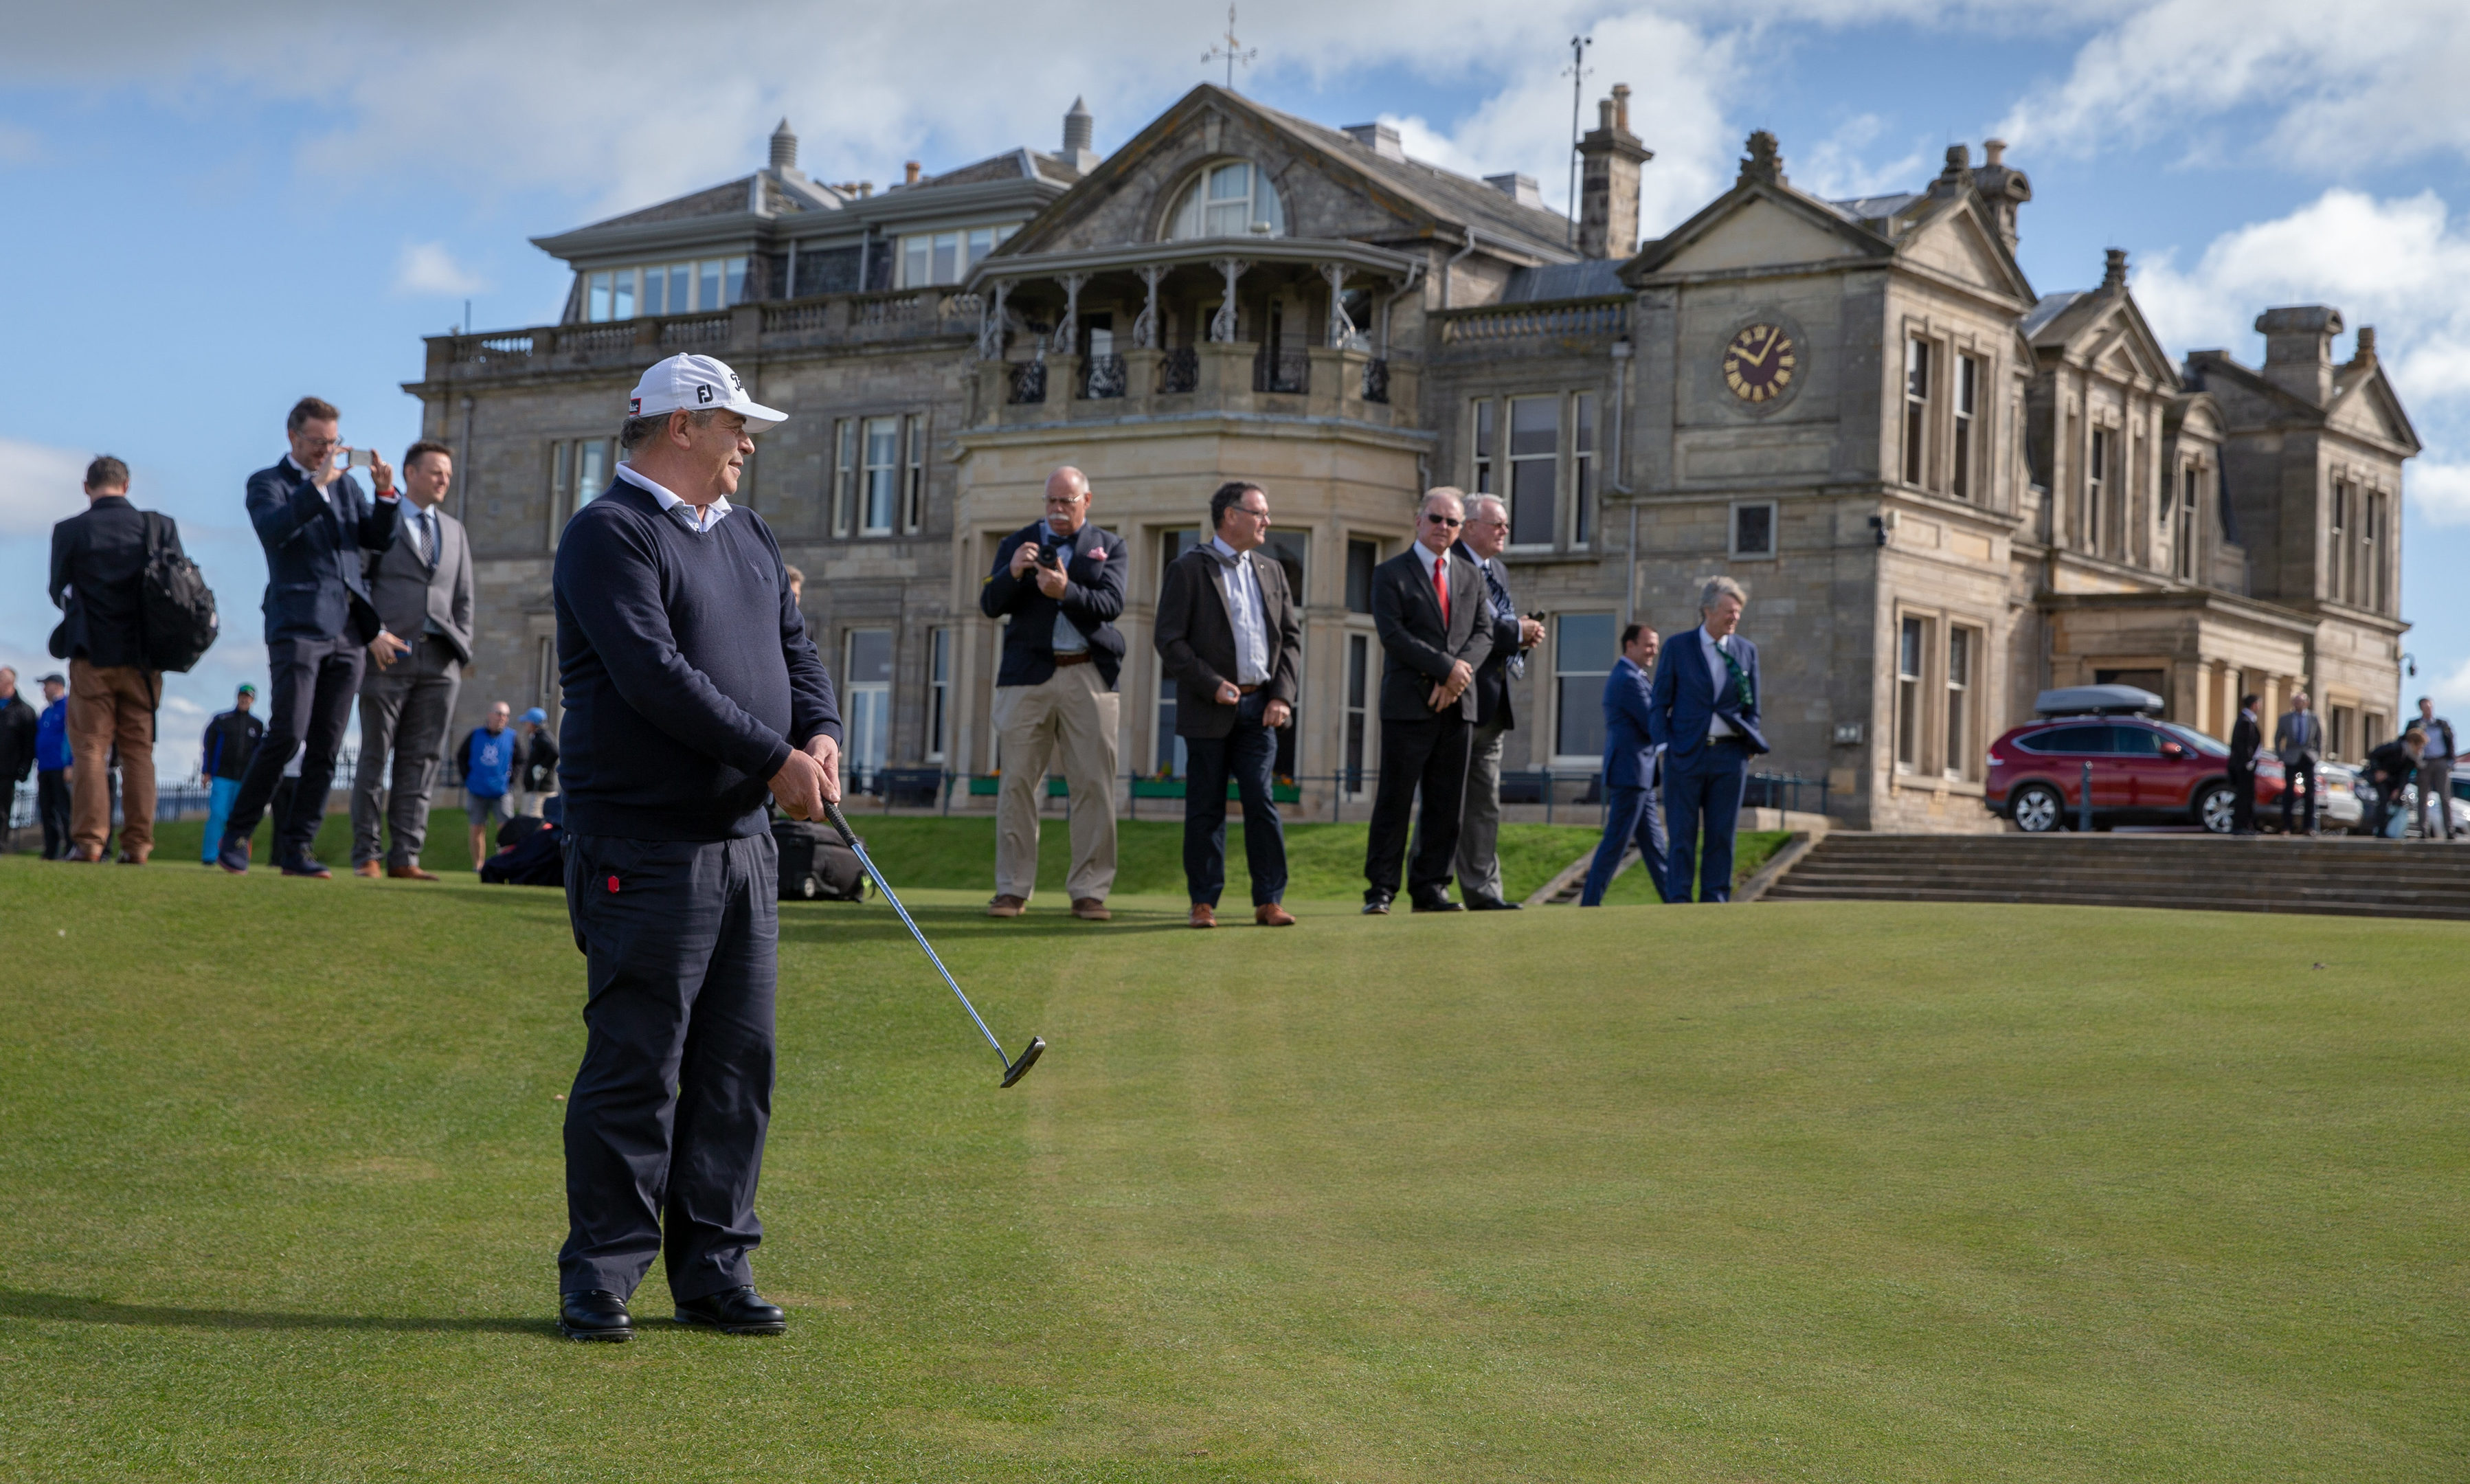 Costantino Rocca tries to recreate his famous putt at St Andrews.